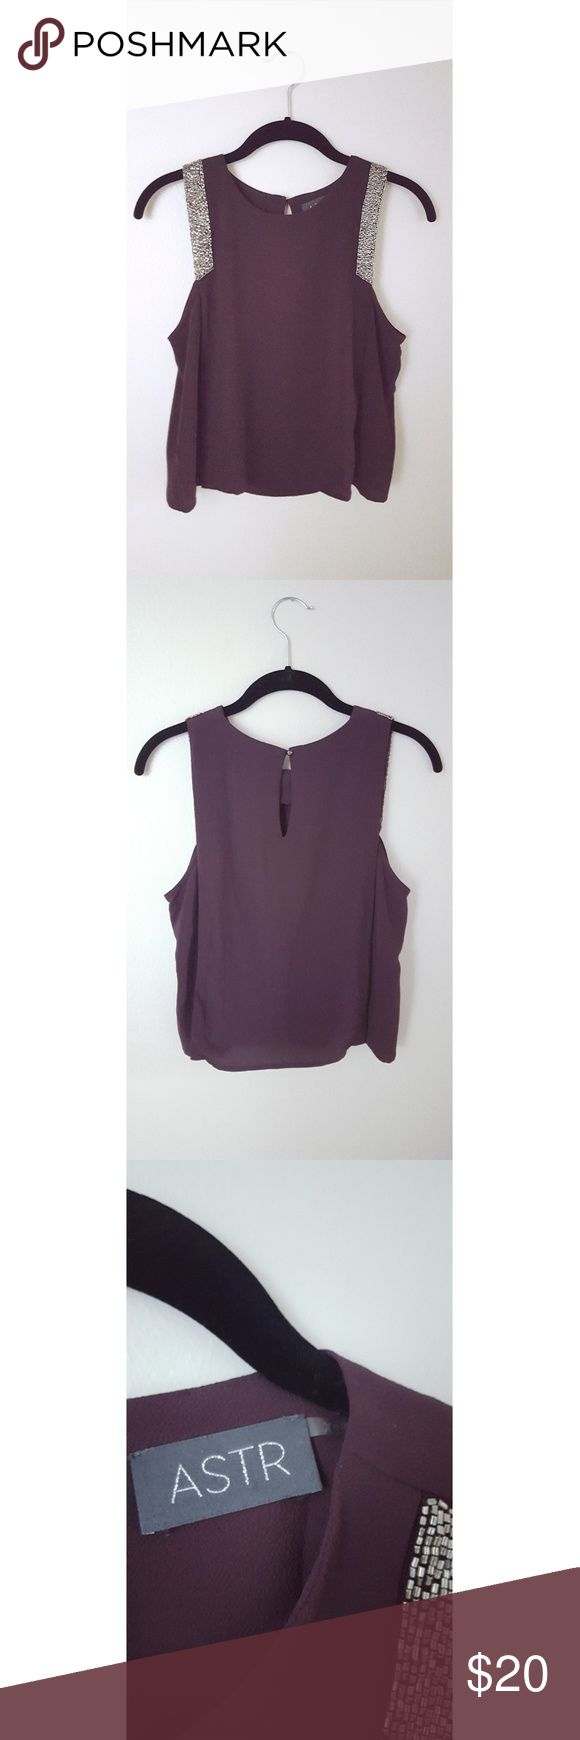 Nordstrom ASTR Embellished Tank Gently used dark purple with silver beaded accent on the shoulders (beads only on front). From a non smoking household.  100% Polyester Astr Tops Tank Tops